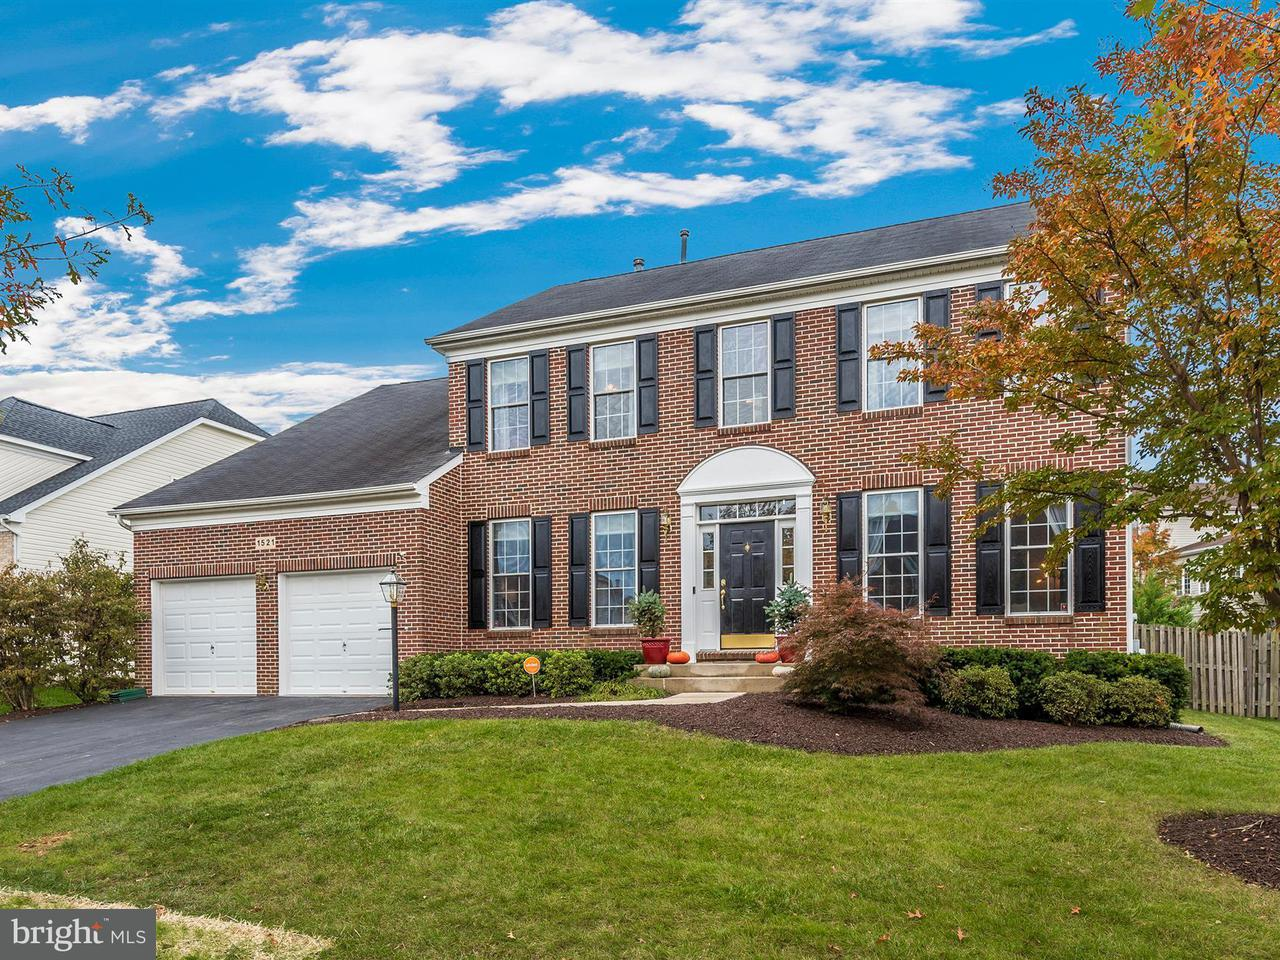 Single Family Home for Sale at 1521 STAR STELLA Drive 1521 STAR STELLA Drive Odenton, Maryland 21113 United States